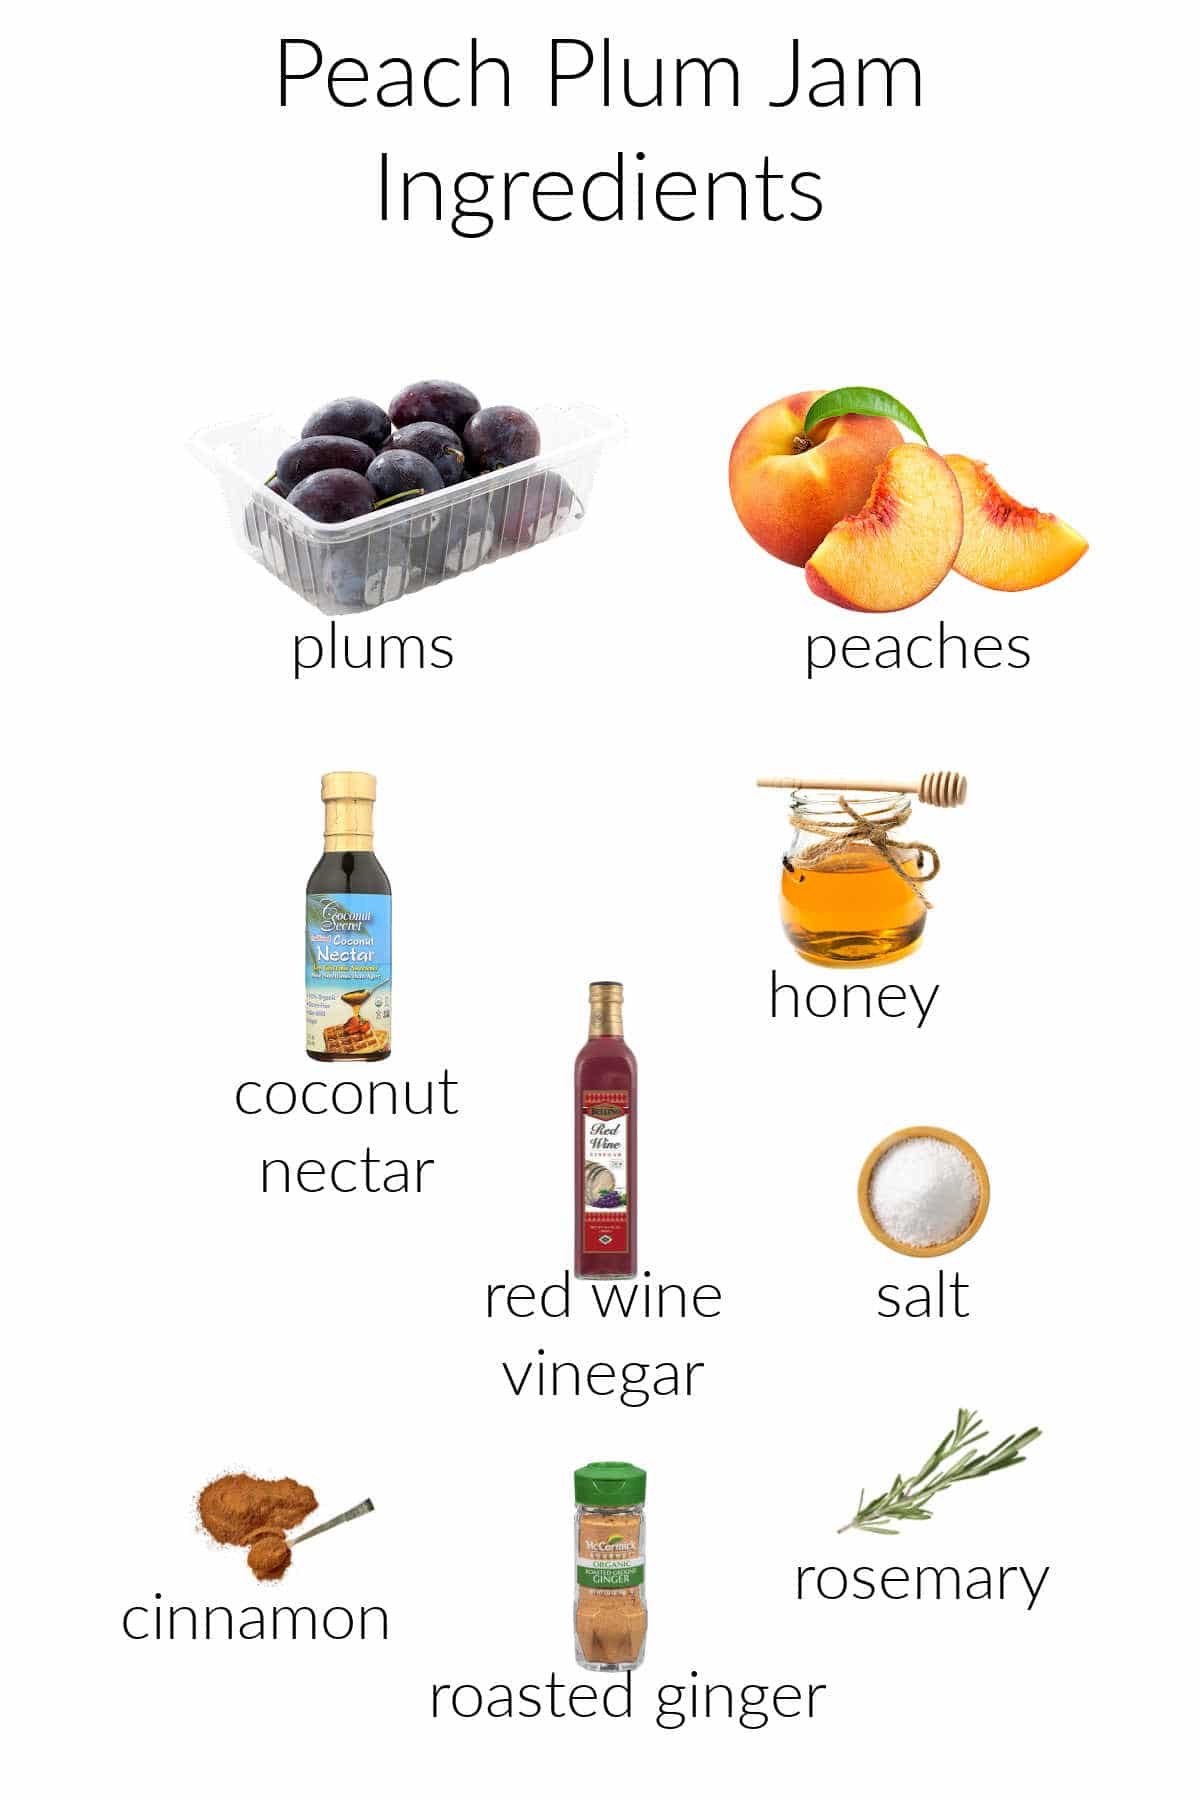 A collage of the ingredients for making peach plum jam: peaches, plums, coconut nectar, honey, red wine vinegar, salt, cinnamon, roasted ginger, and rosemary.